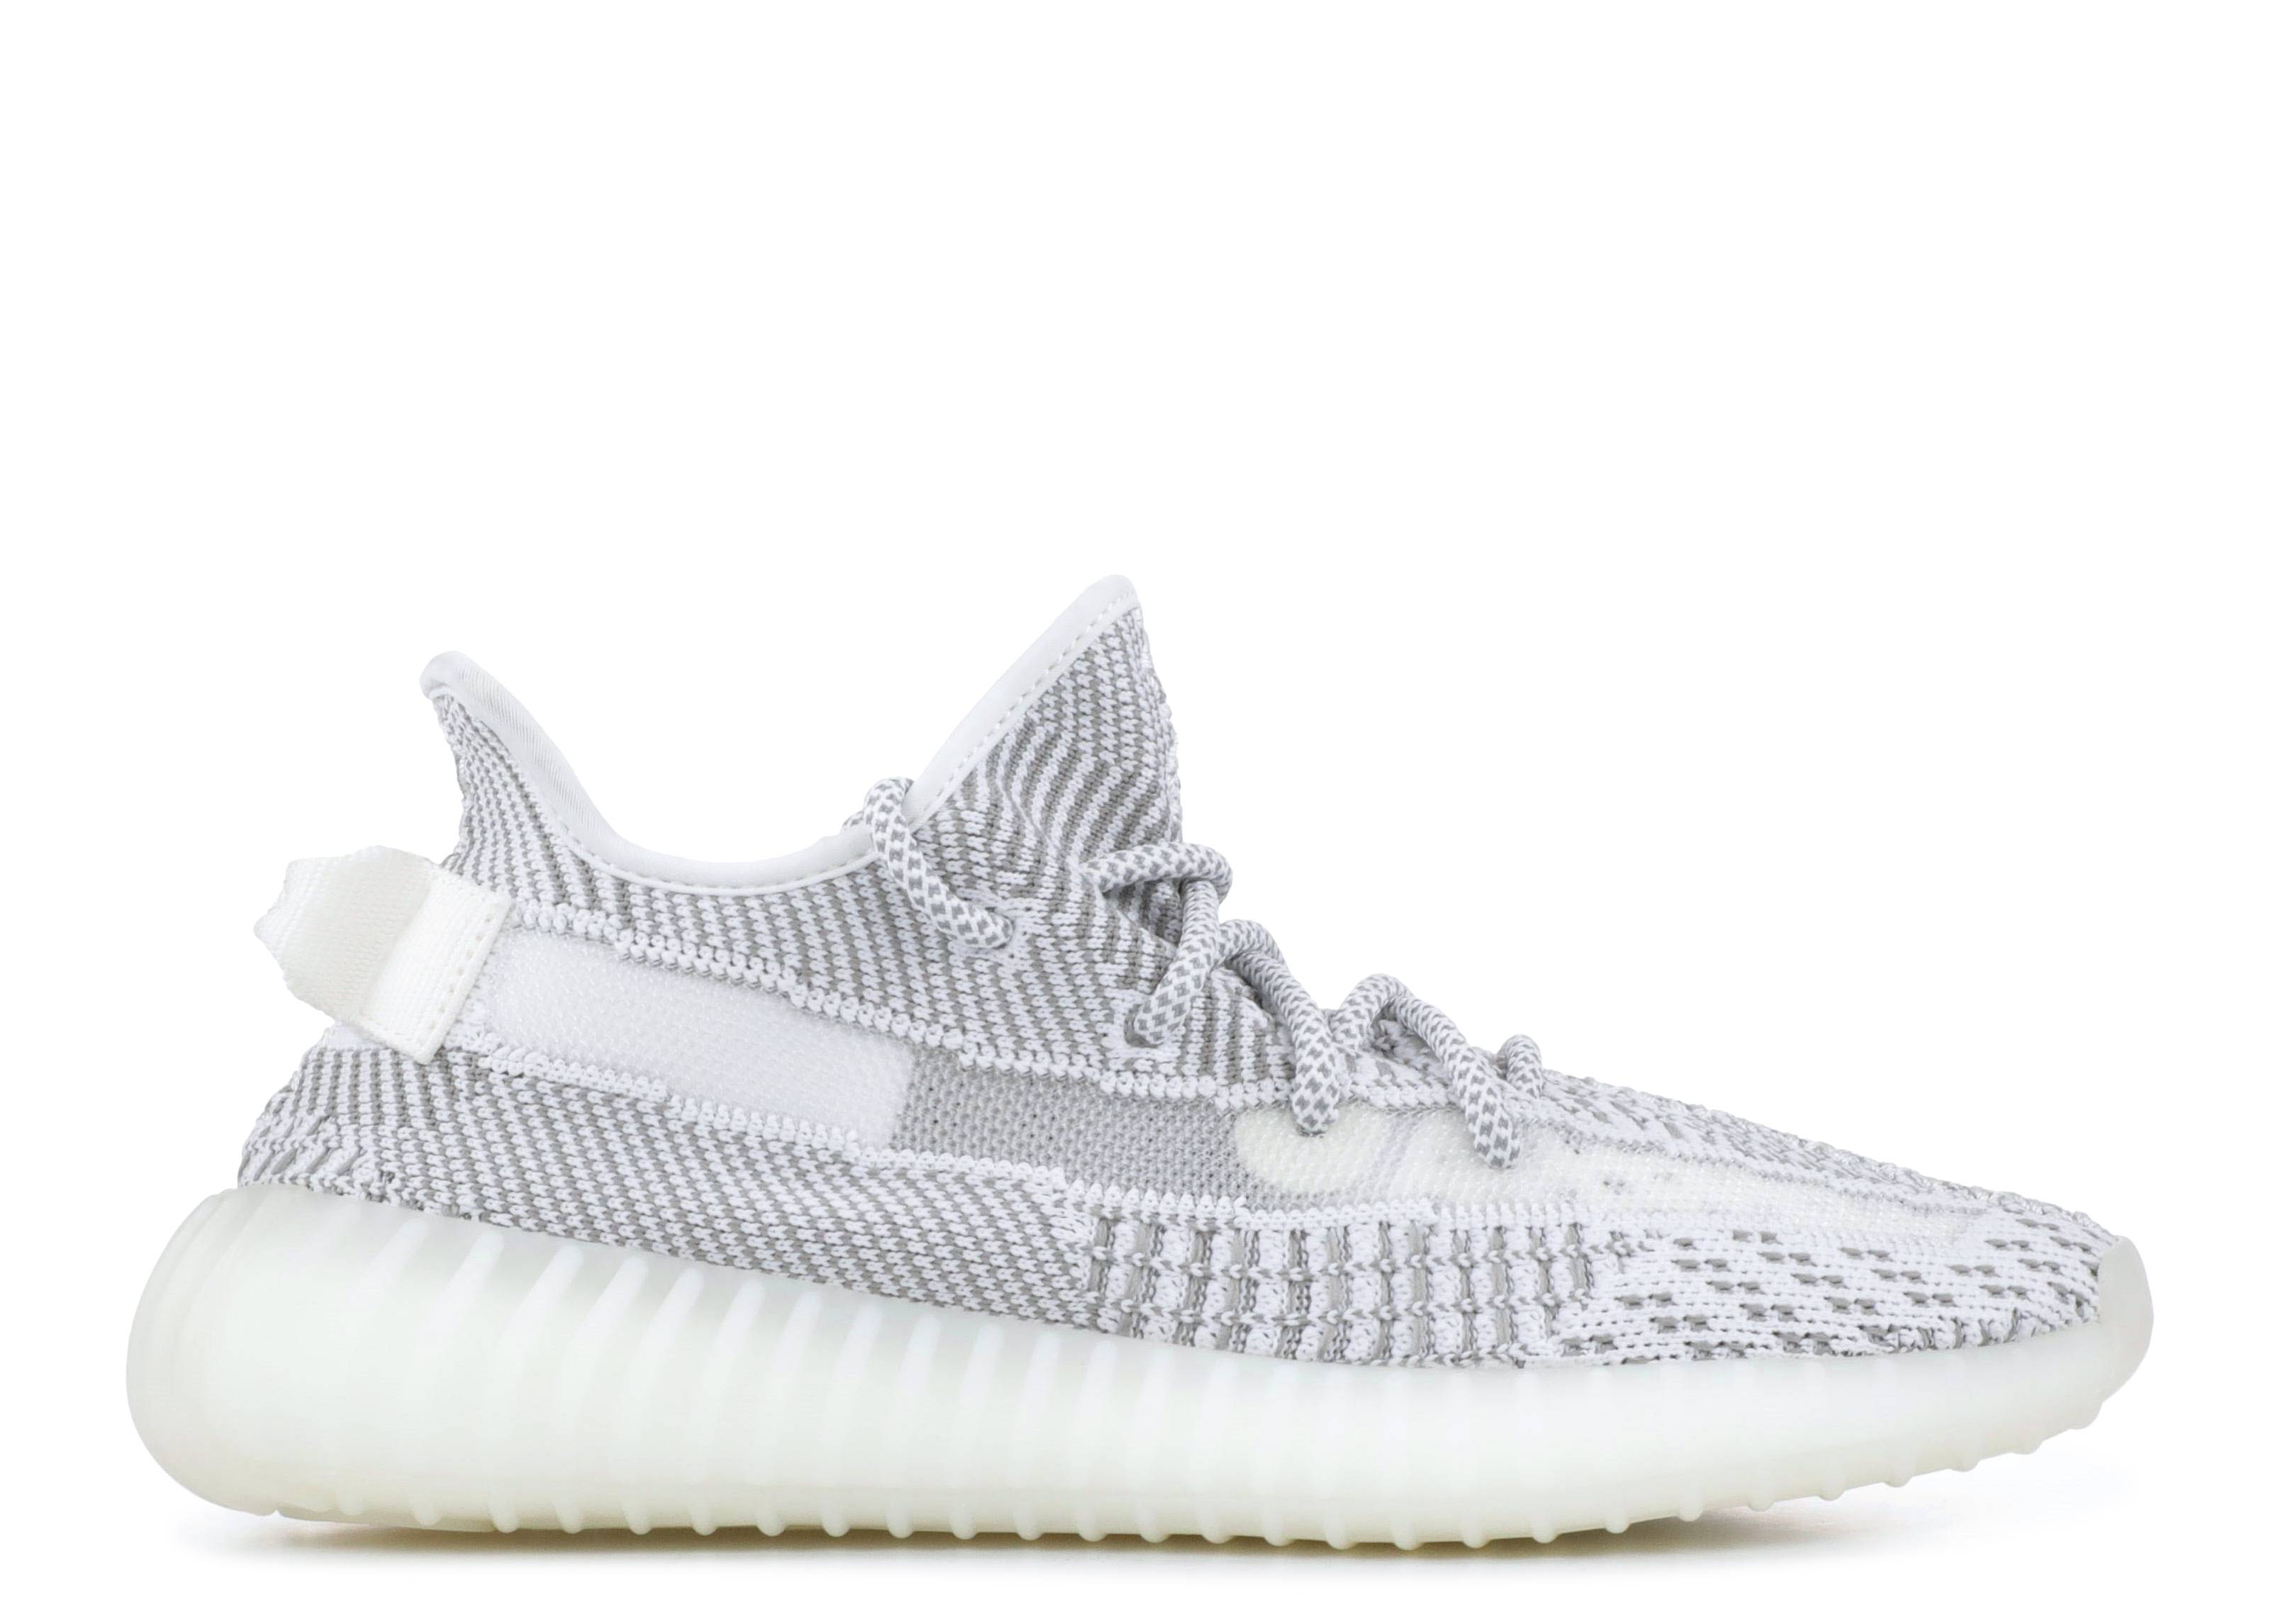 Exact Product: Khloe Kardashian Light Grey Adidas X Yeezy Mesh Sneakers 2019, Brand: Adidas, Available on: flightclub.com, Price: $525